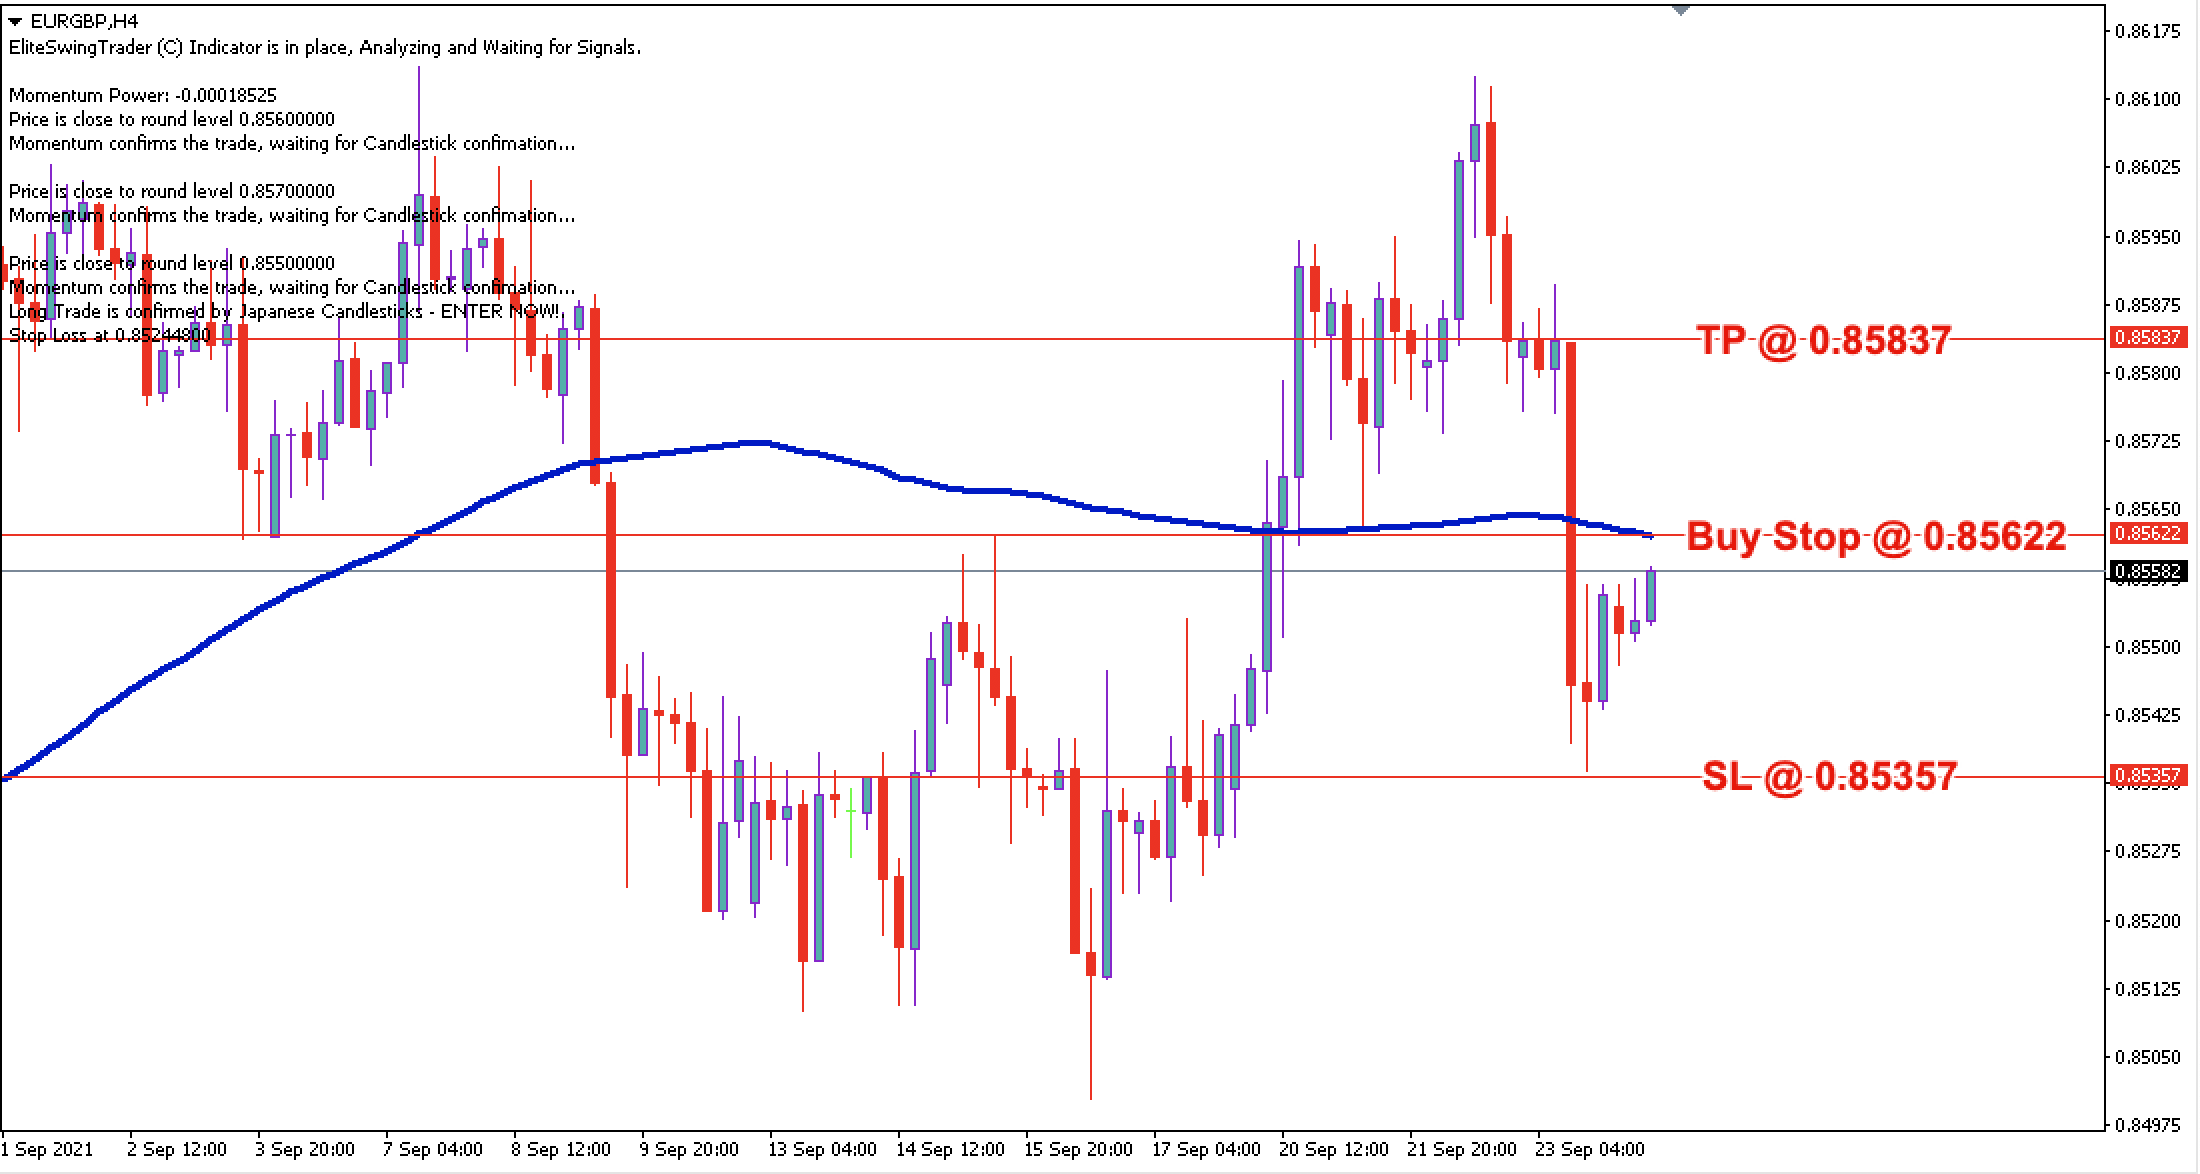 EUR/GBP Daily Price Forecast – 24th Sept 2021